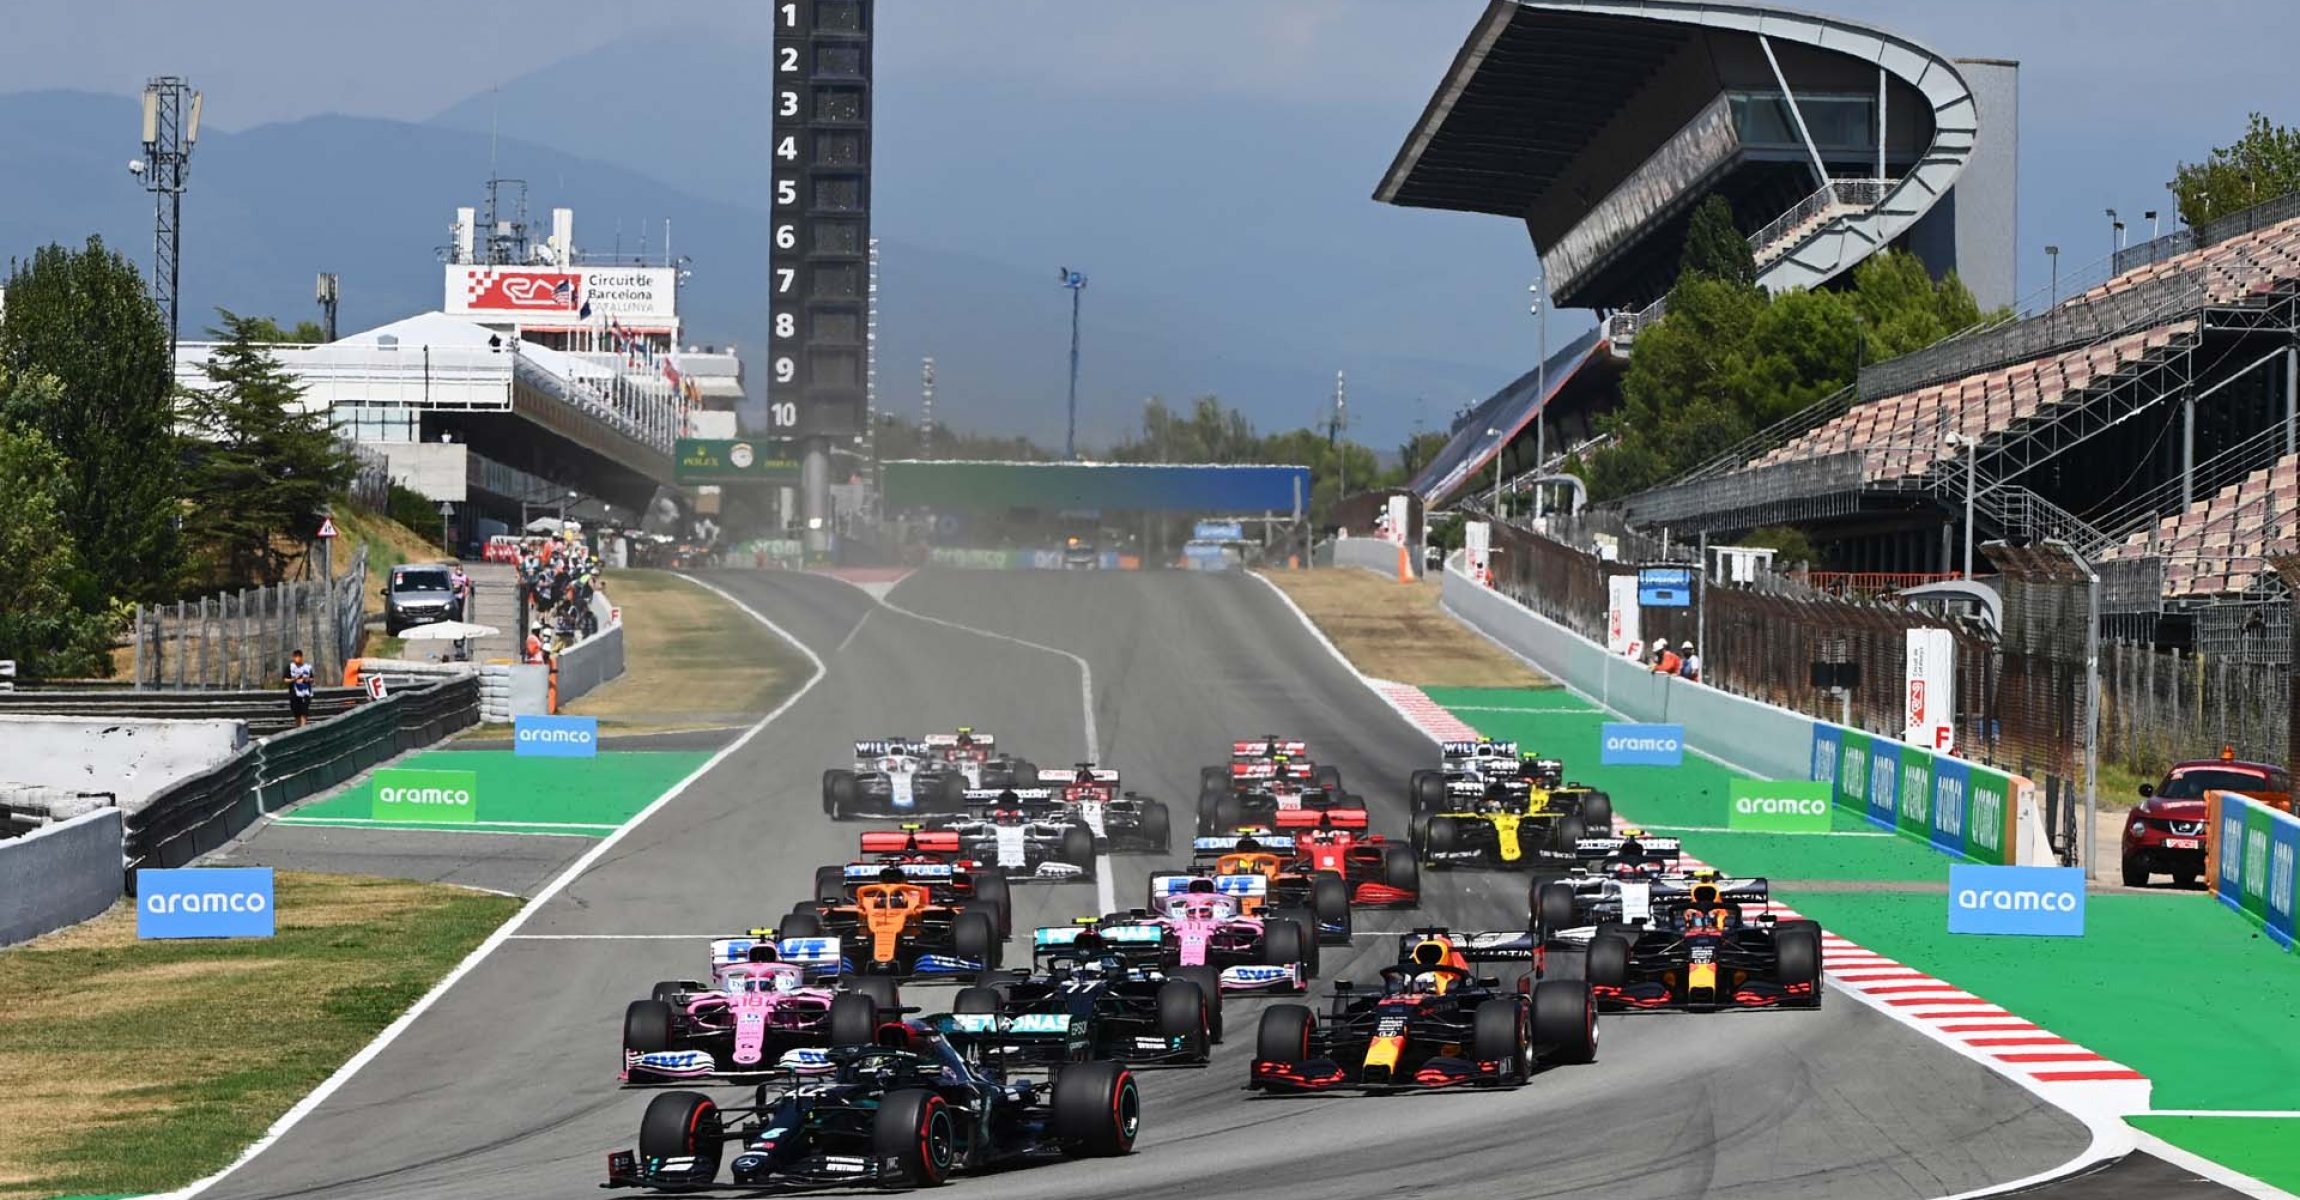 2020 Spanish Grand Prix, Sunday - LAT Images start